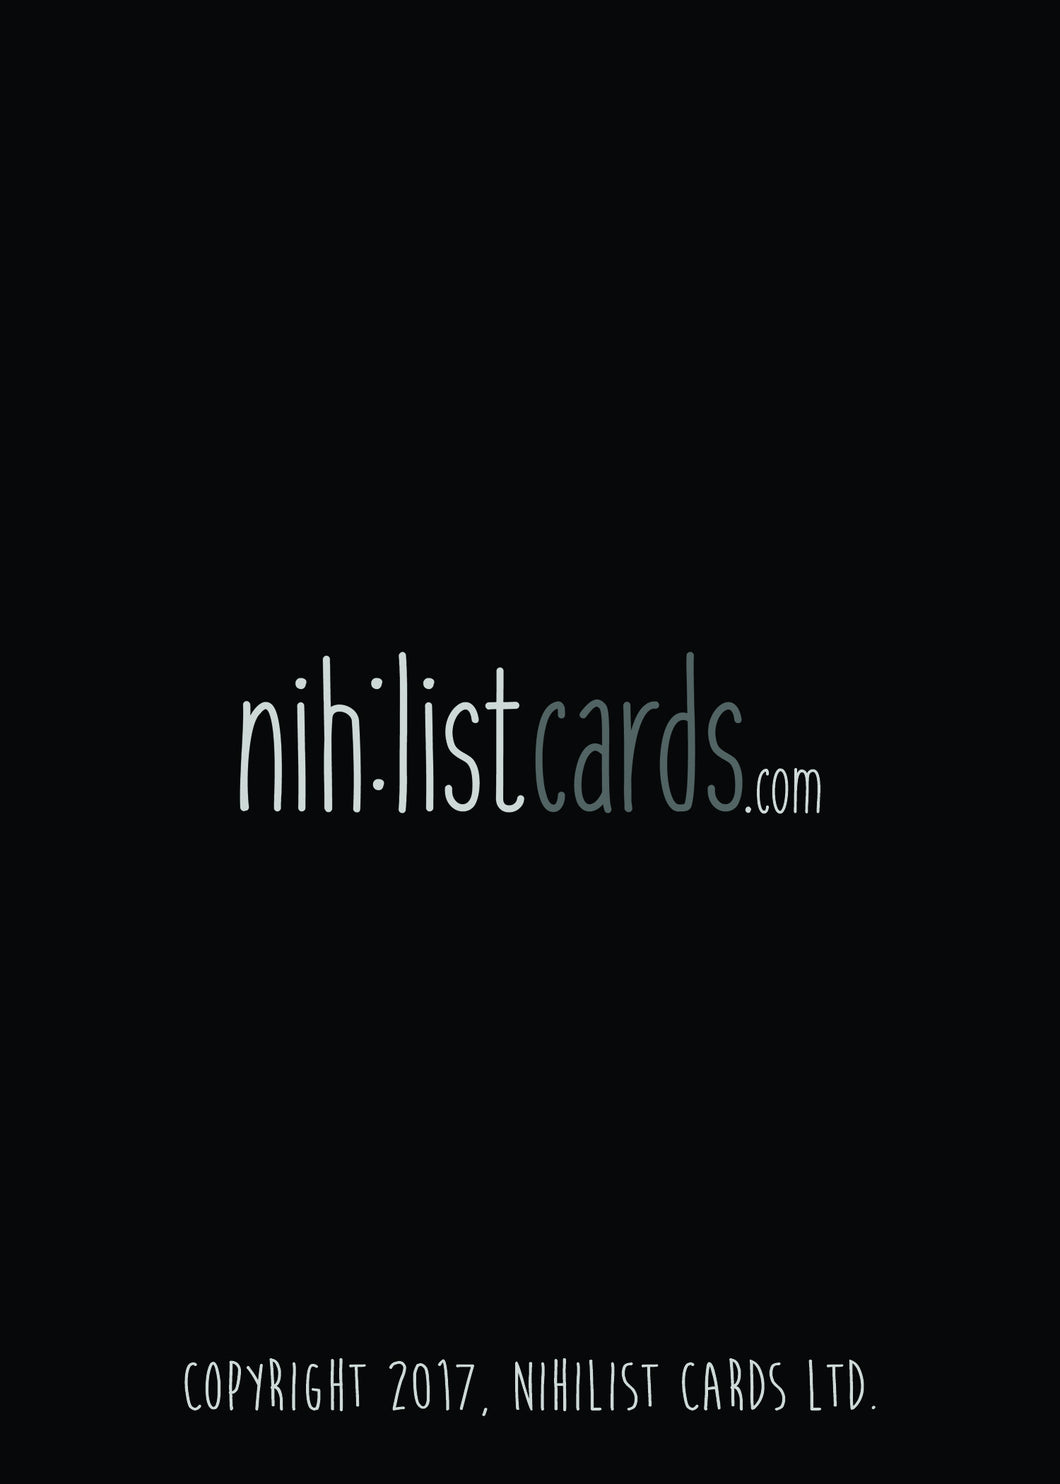 List of reasons why you are special greeting card nihilist cards list of reasons why you are special greeting card dark humor greeting card nihilist cards m4hsunfo